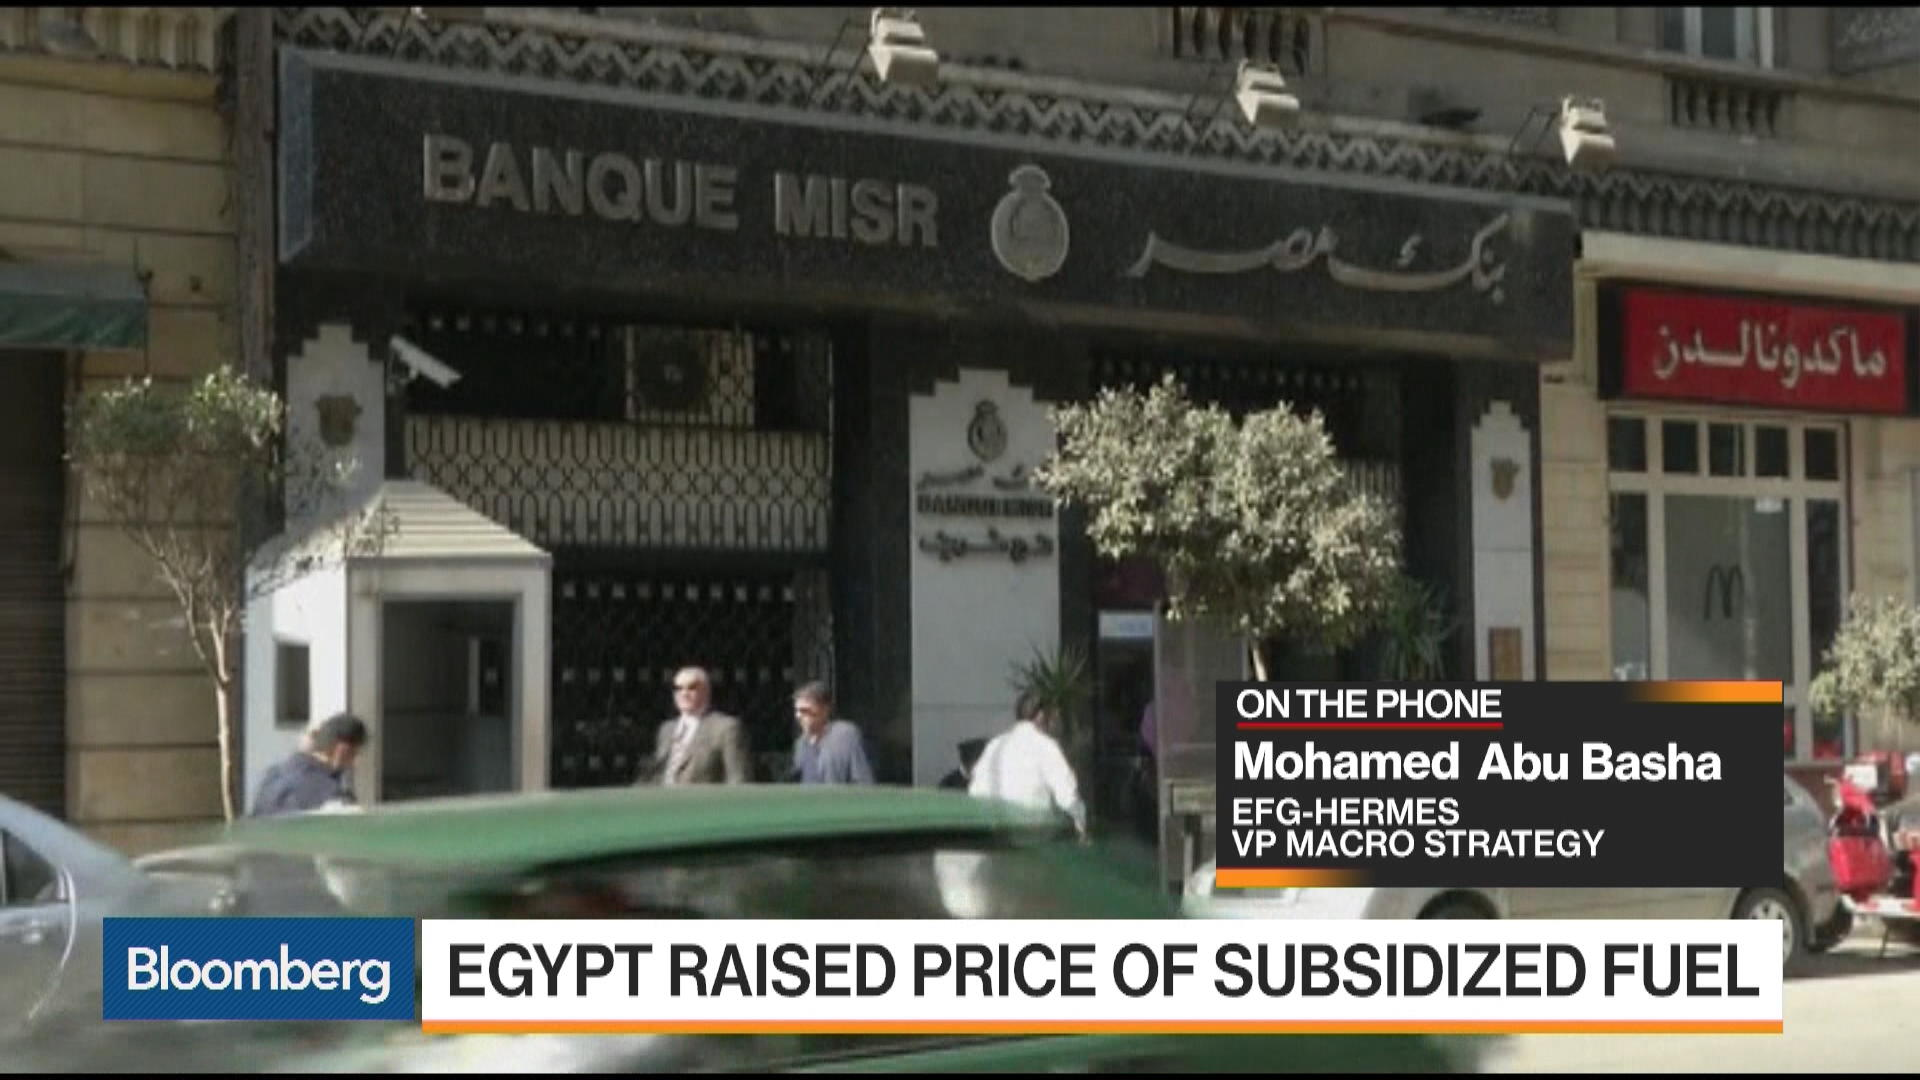 IMF Approves $12B Loan to Egypt